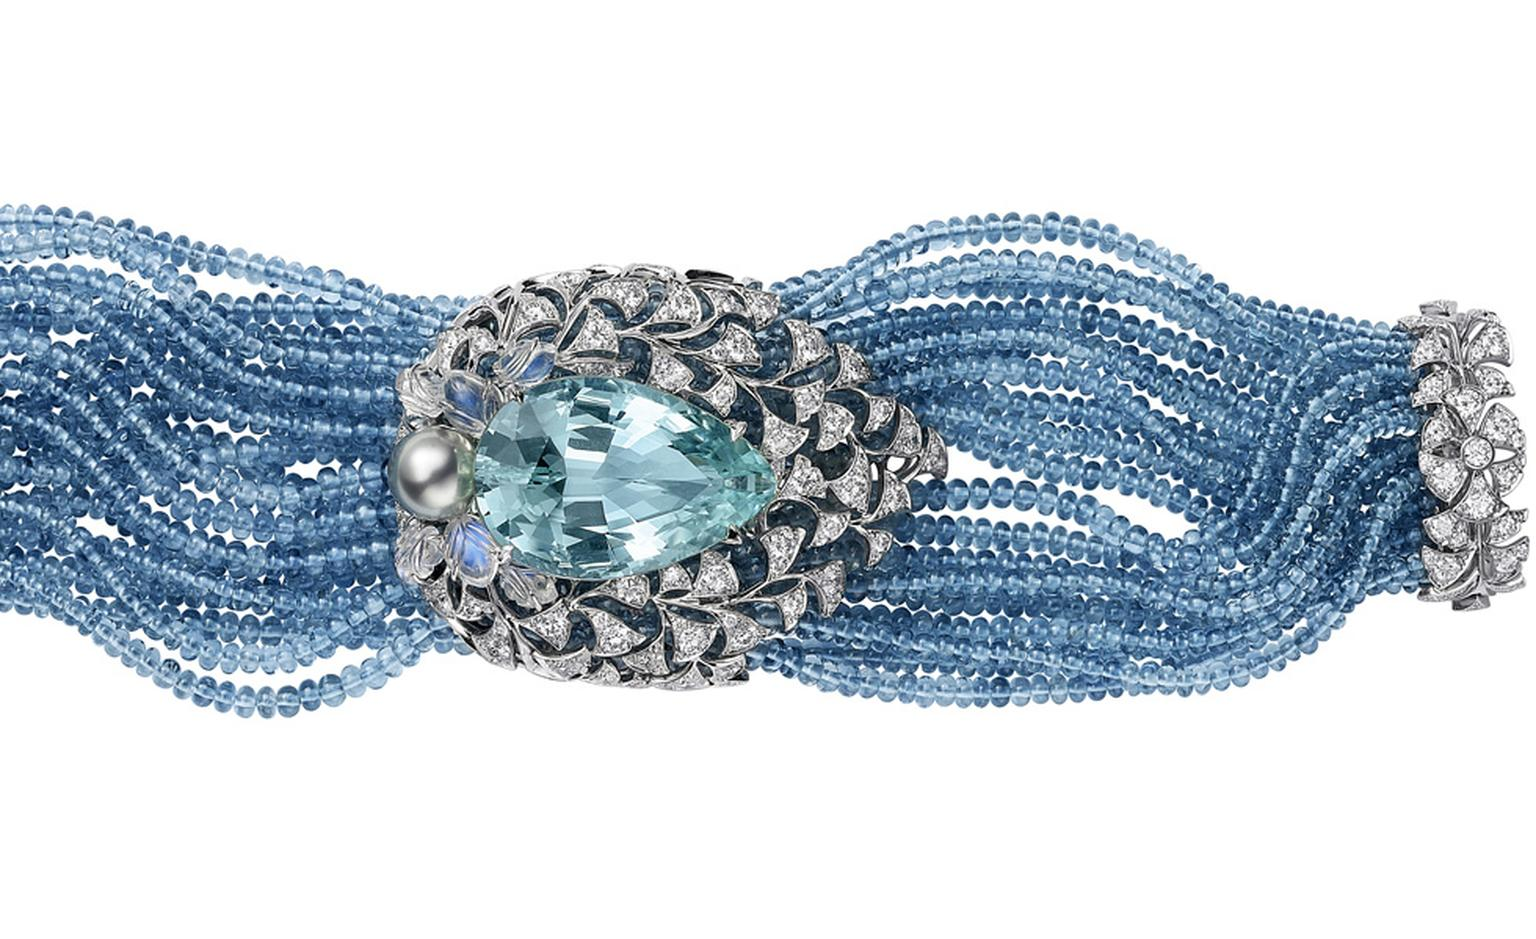 Sortilège de Cartier collection bracelet in platinum with pear-shaped aquamarine, aquamrarine beads, engraved moonstones, one Tahitian pearl and brilliant-cut diamonds